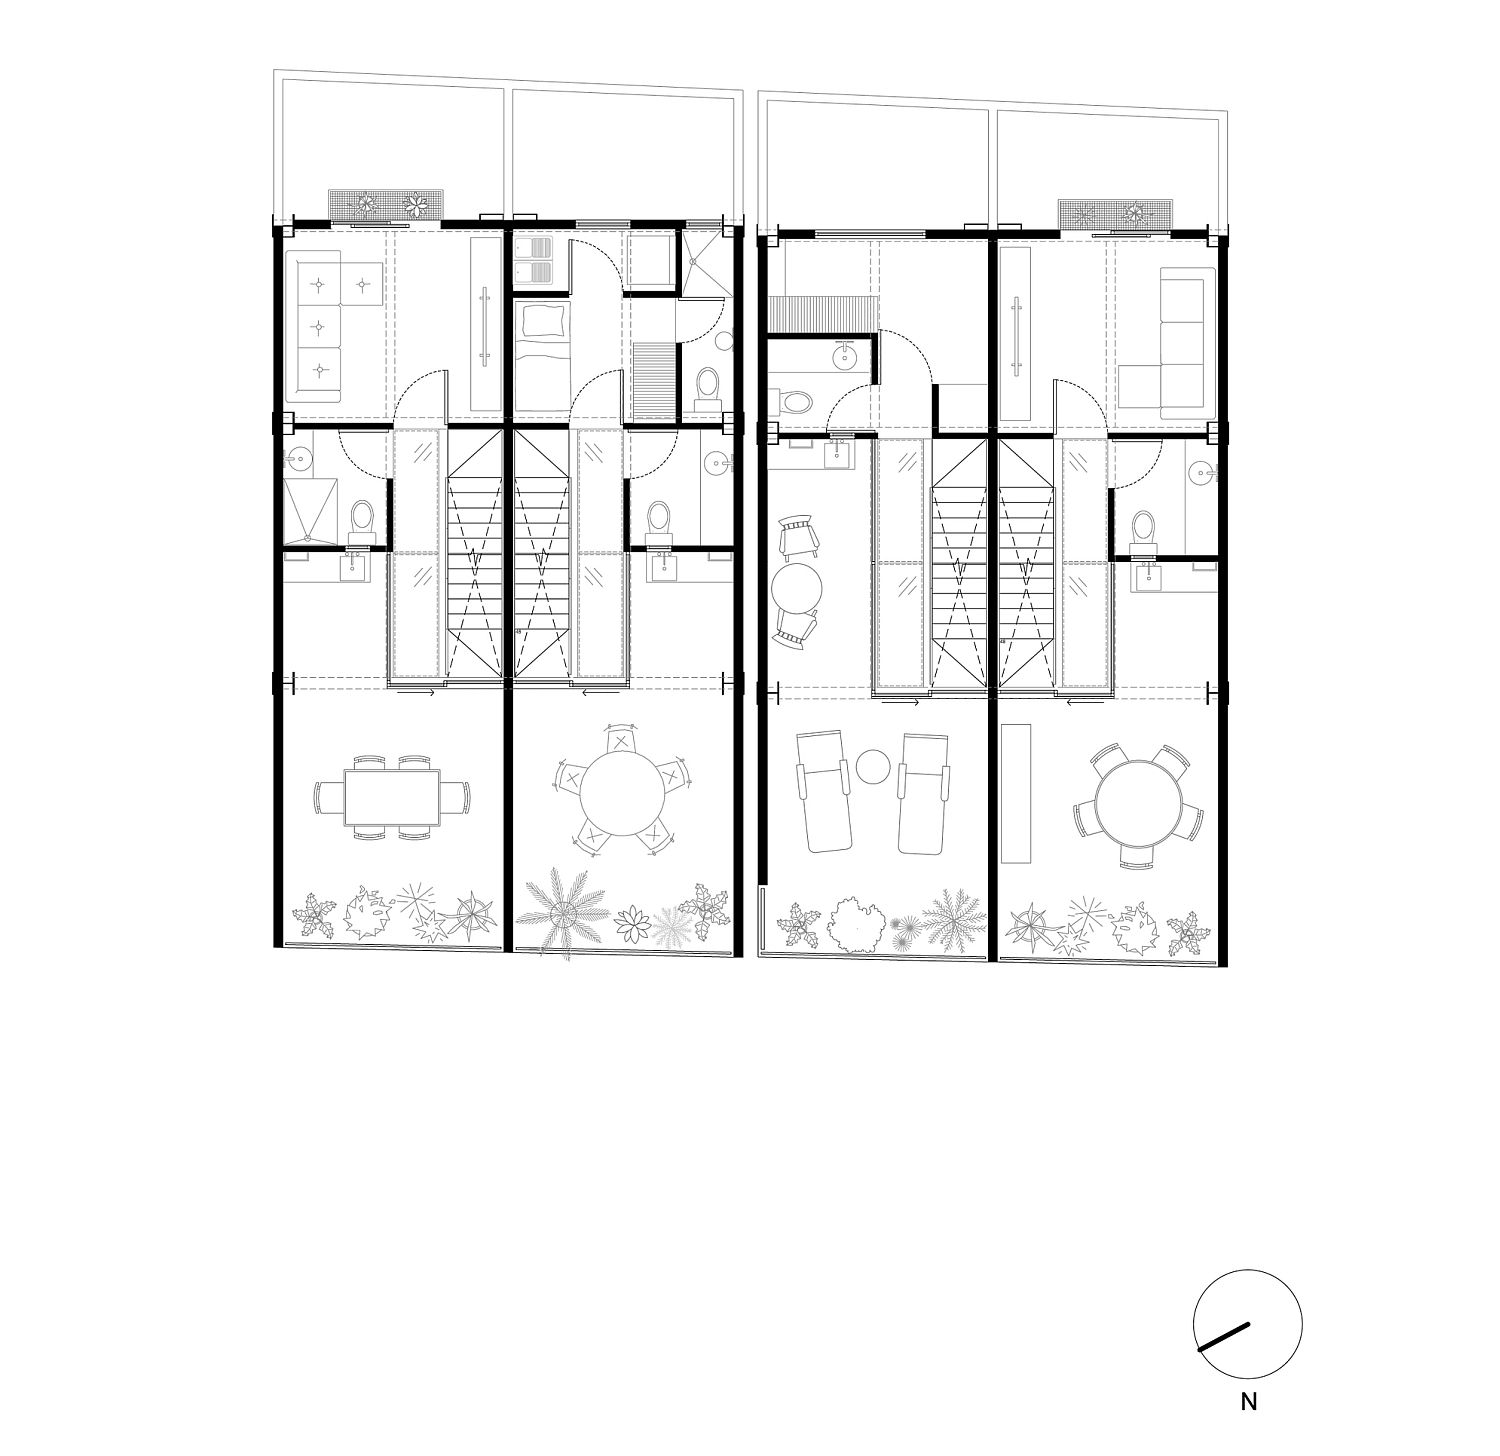 Top level plan with terrace and outdoor dining